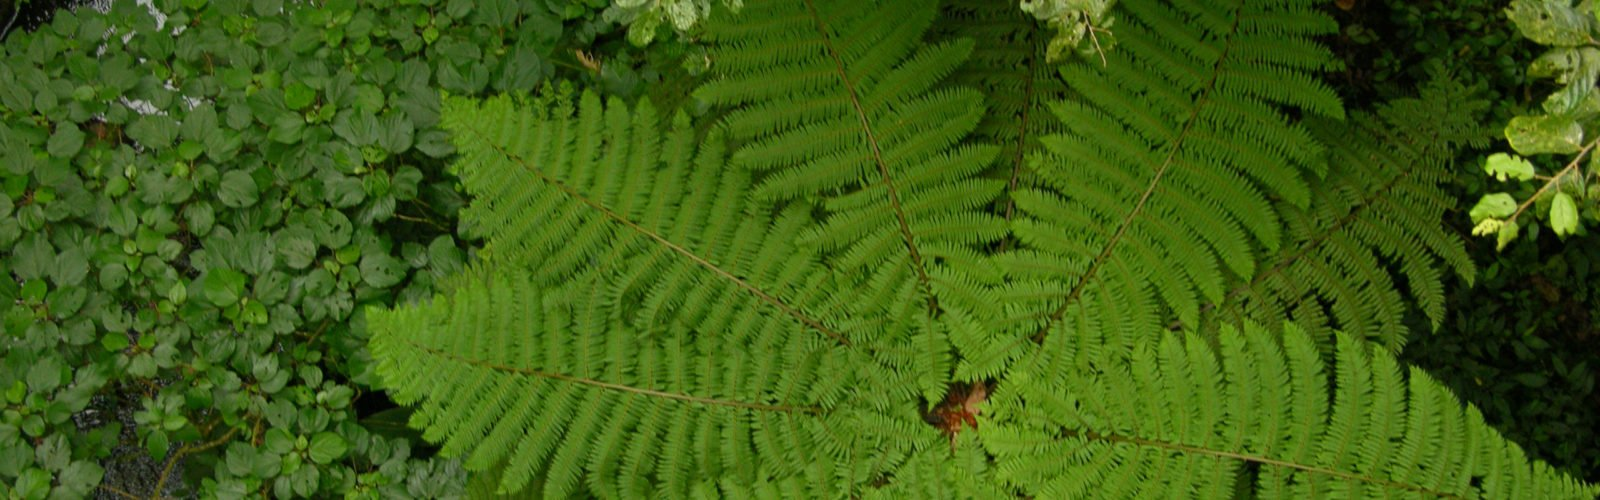 costa-rica-cloud-forest-fern